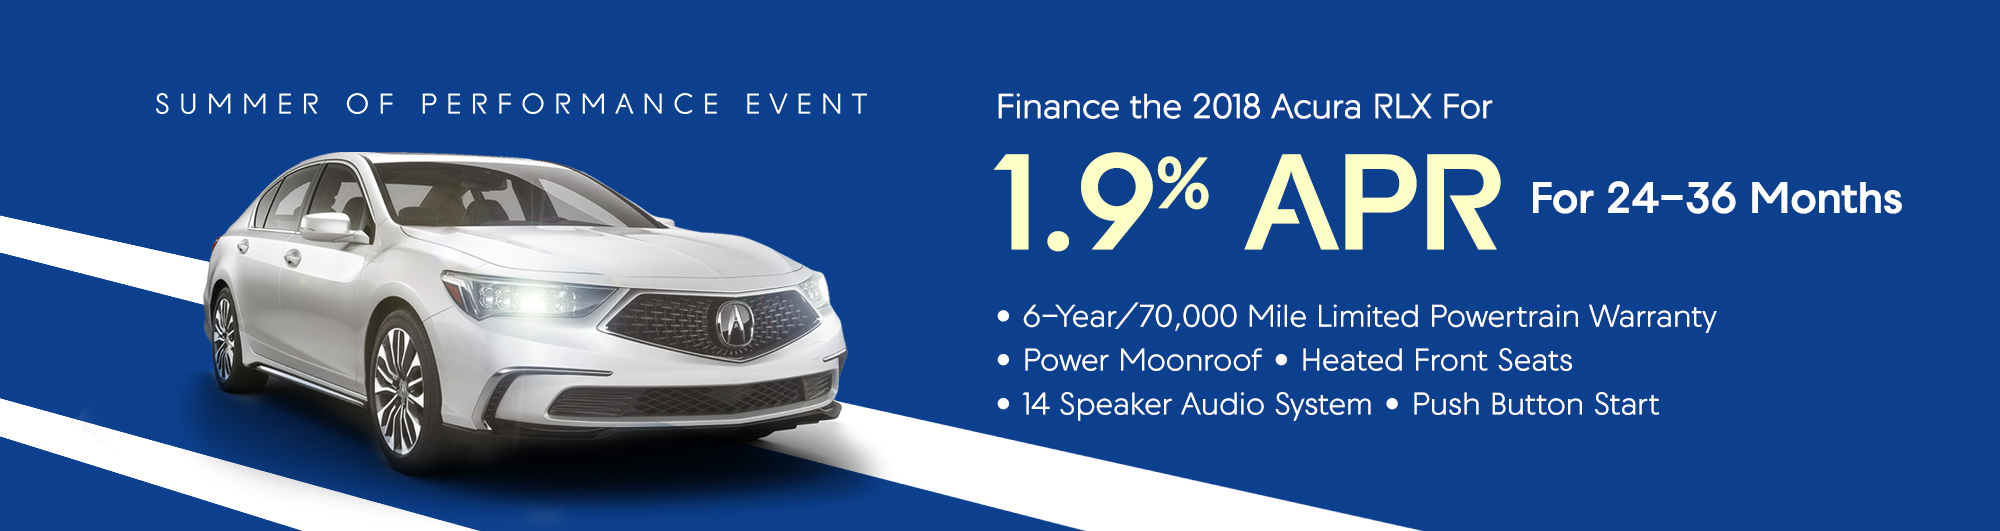 Finance the 2018 Acura RLX for 1.9% APR For 24-36 Months